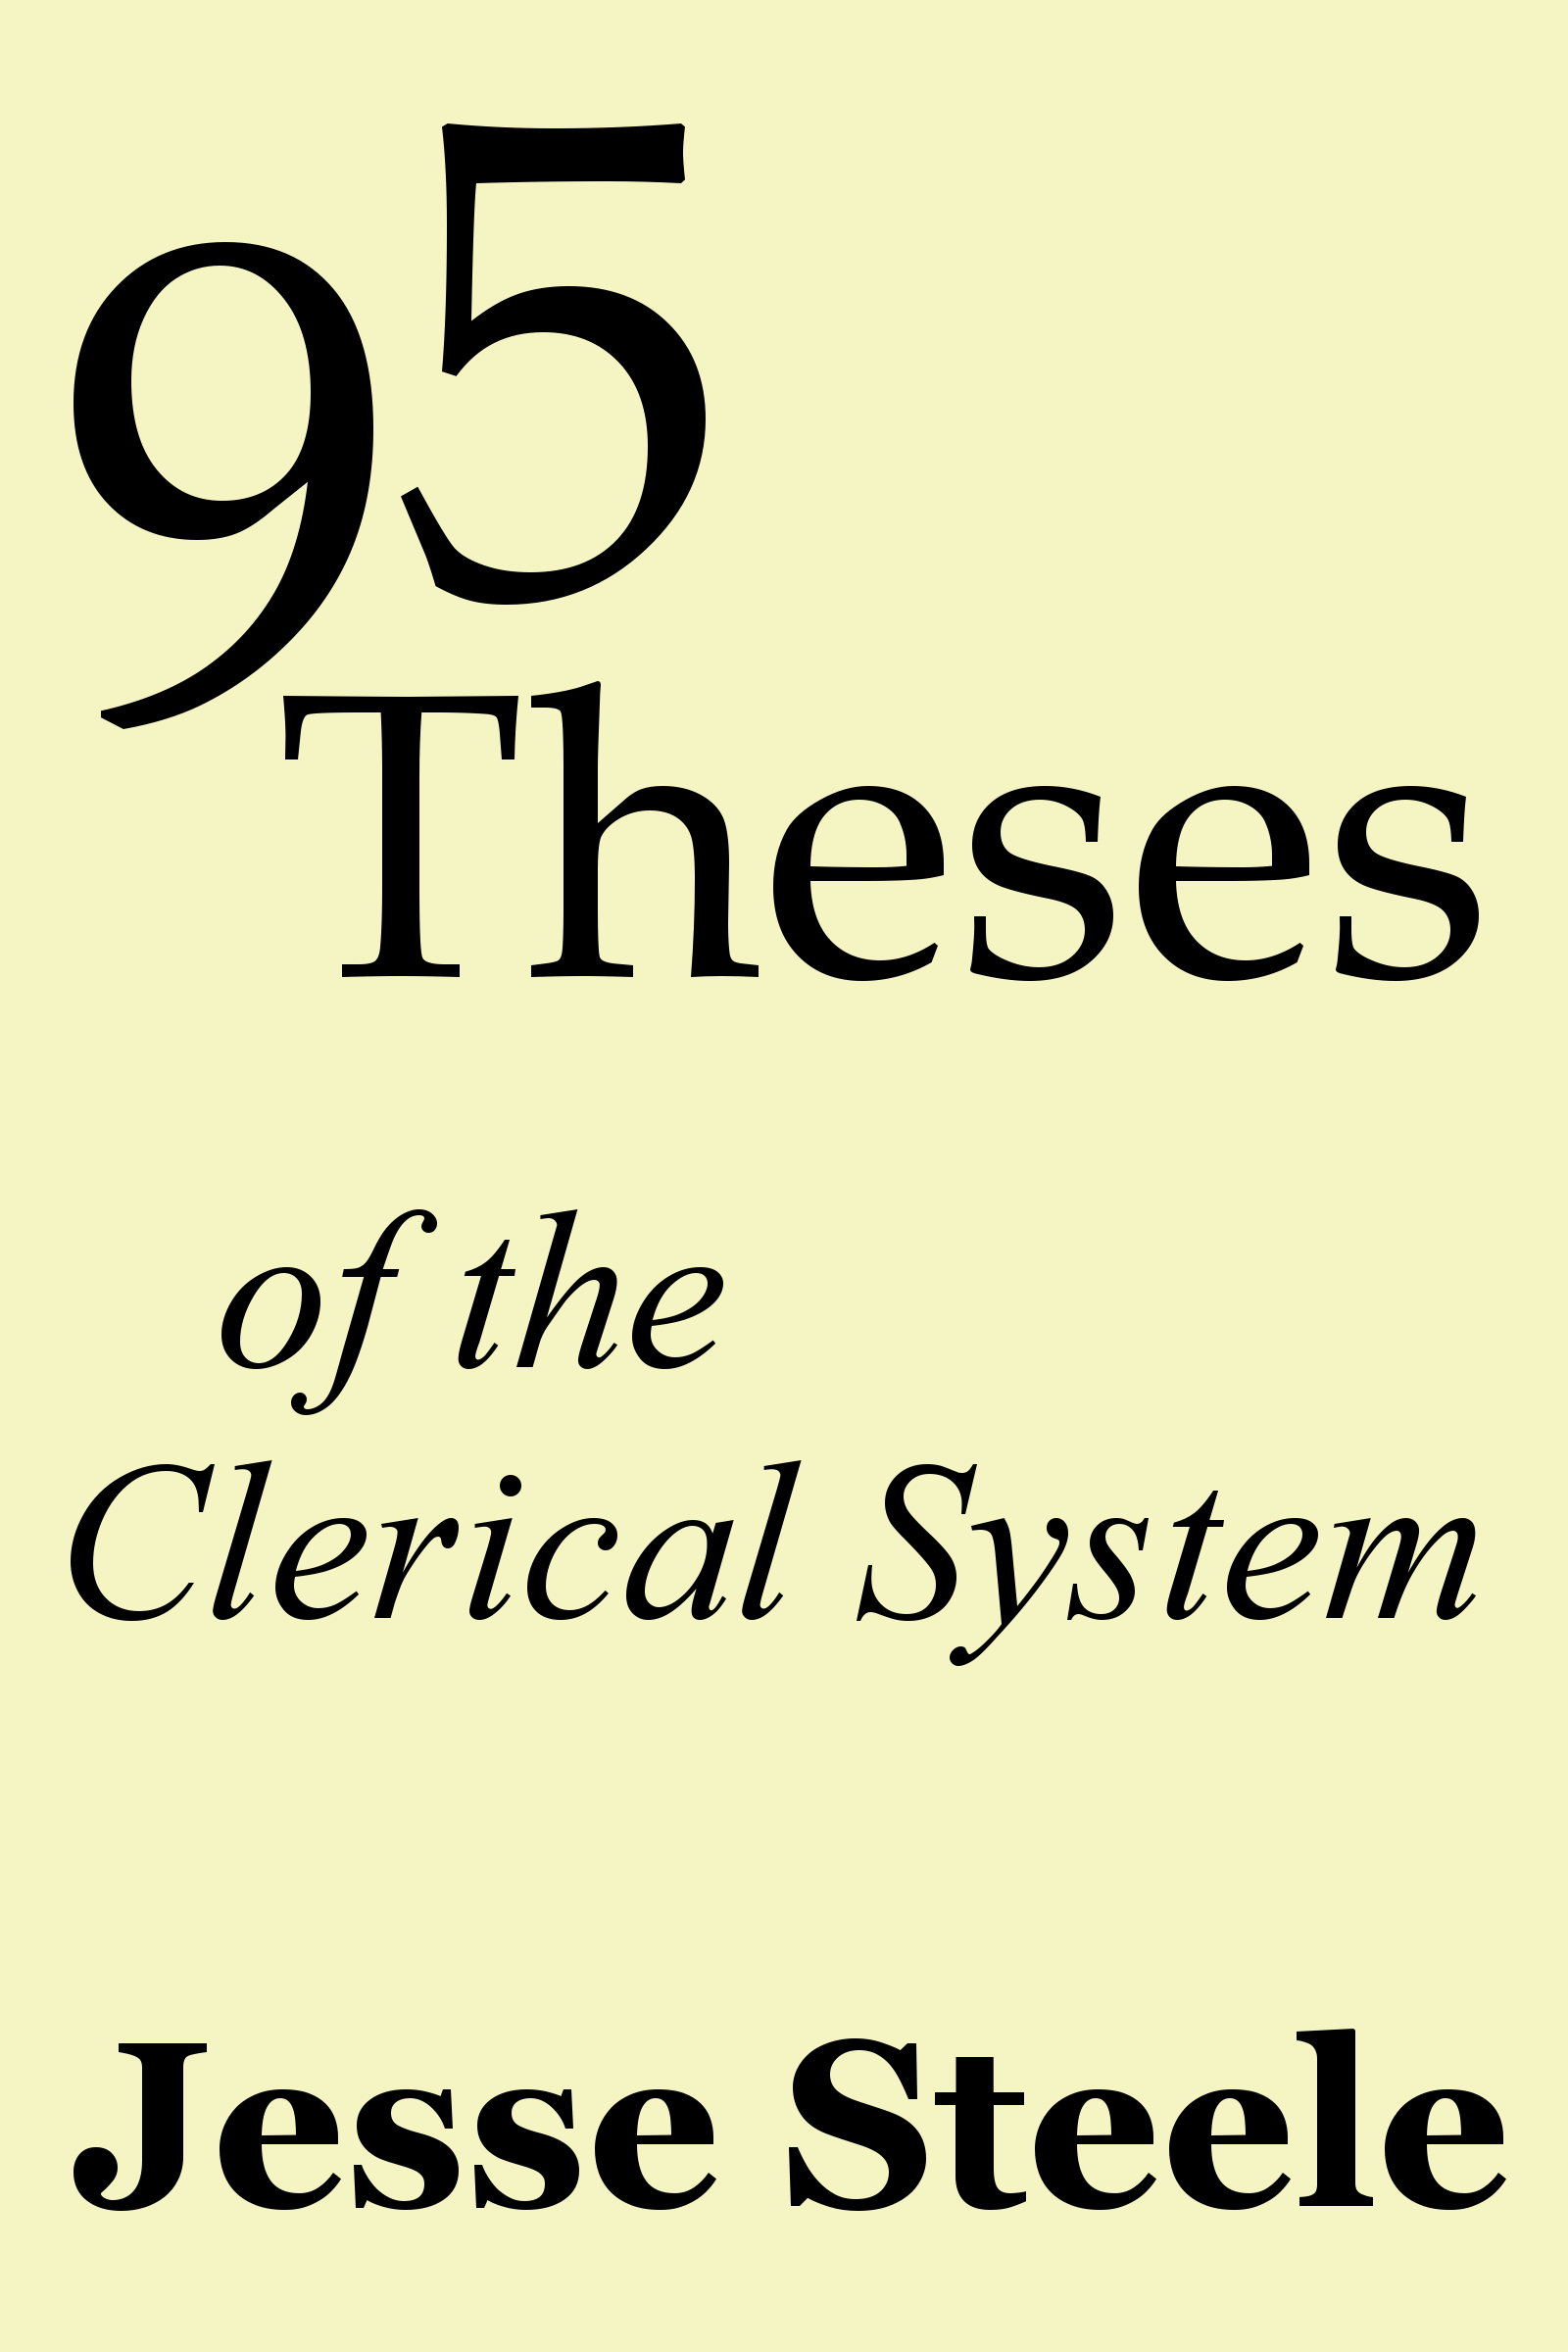 essay 95 theses